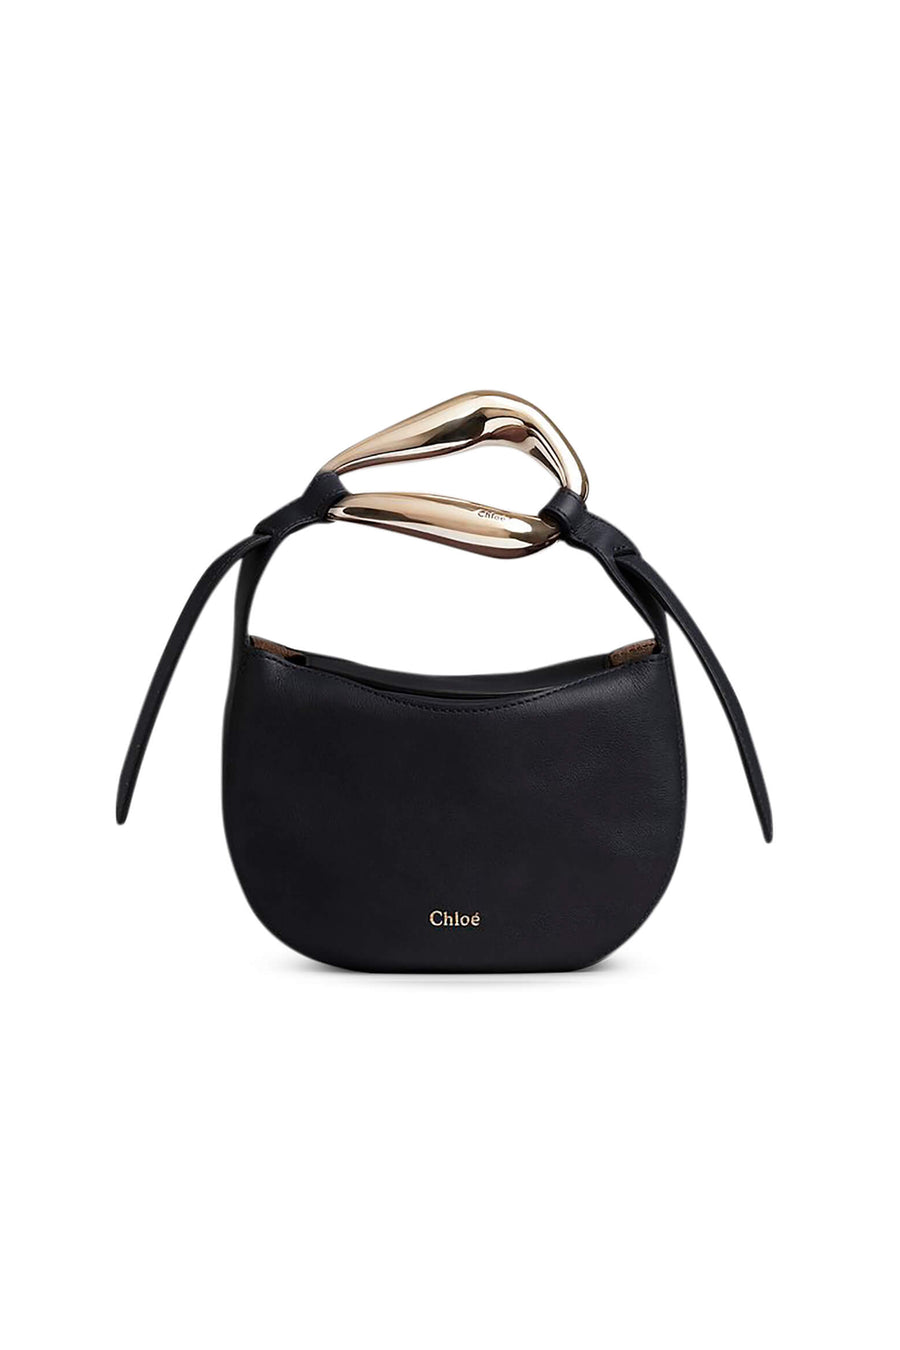 Chloe Kiss Small Bag in Full Blue from The New Trend